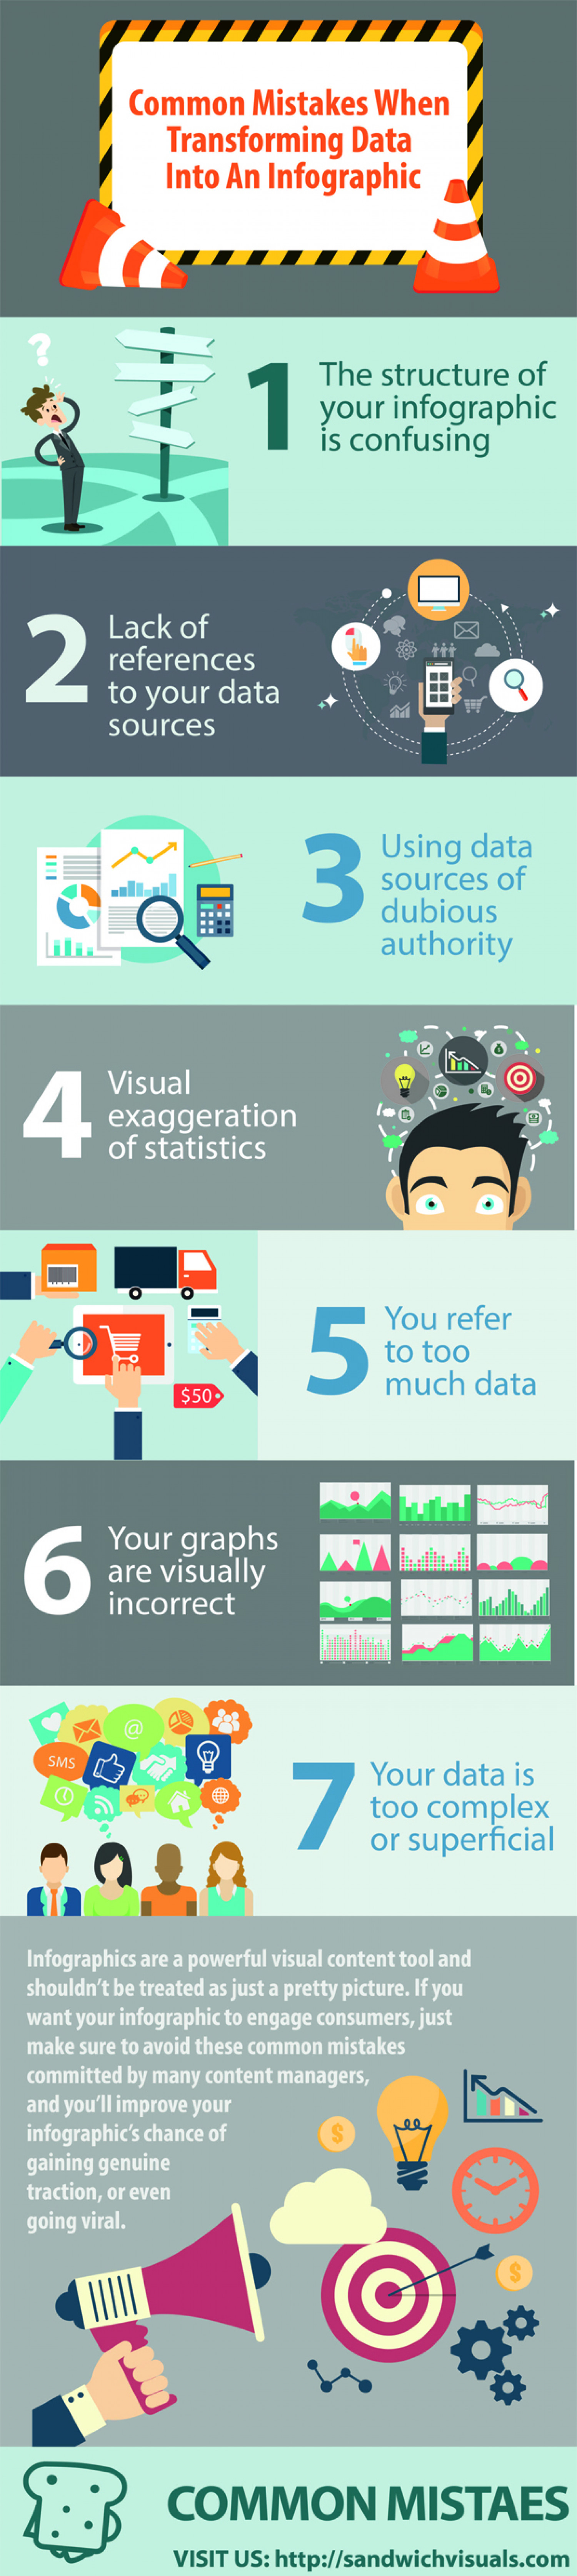 Common Mistakes When Transforming Data Into An Infographic Infographic